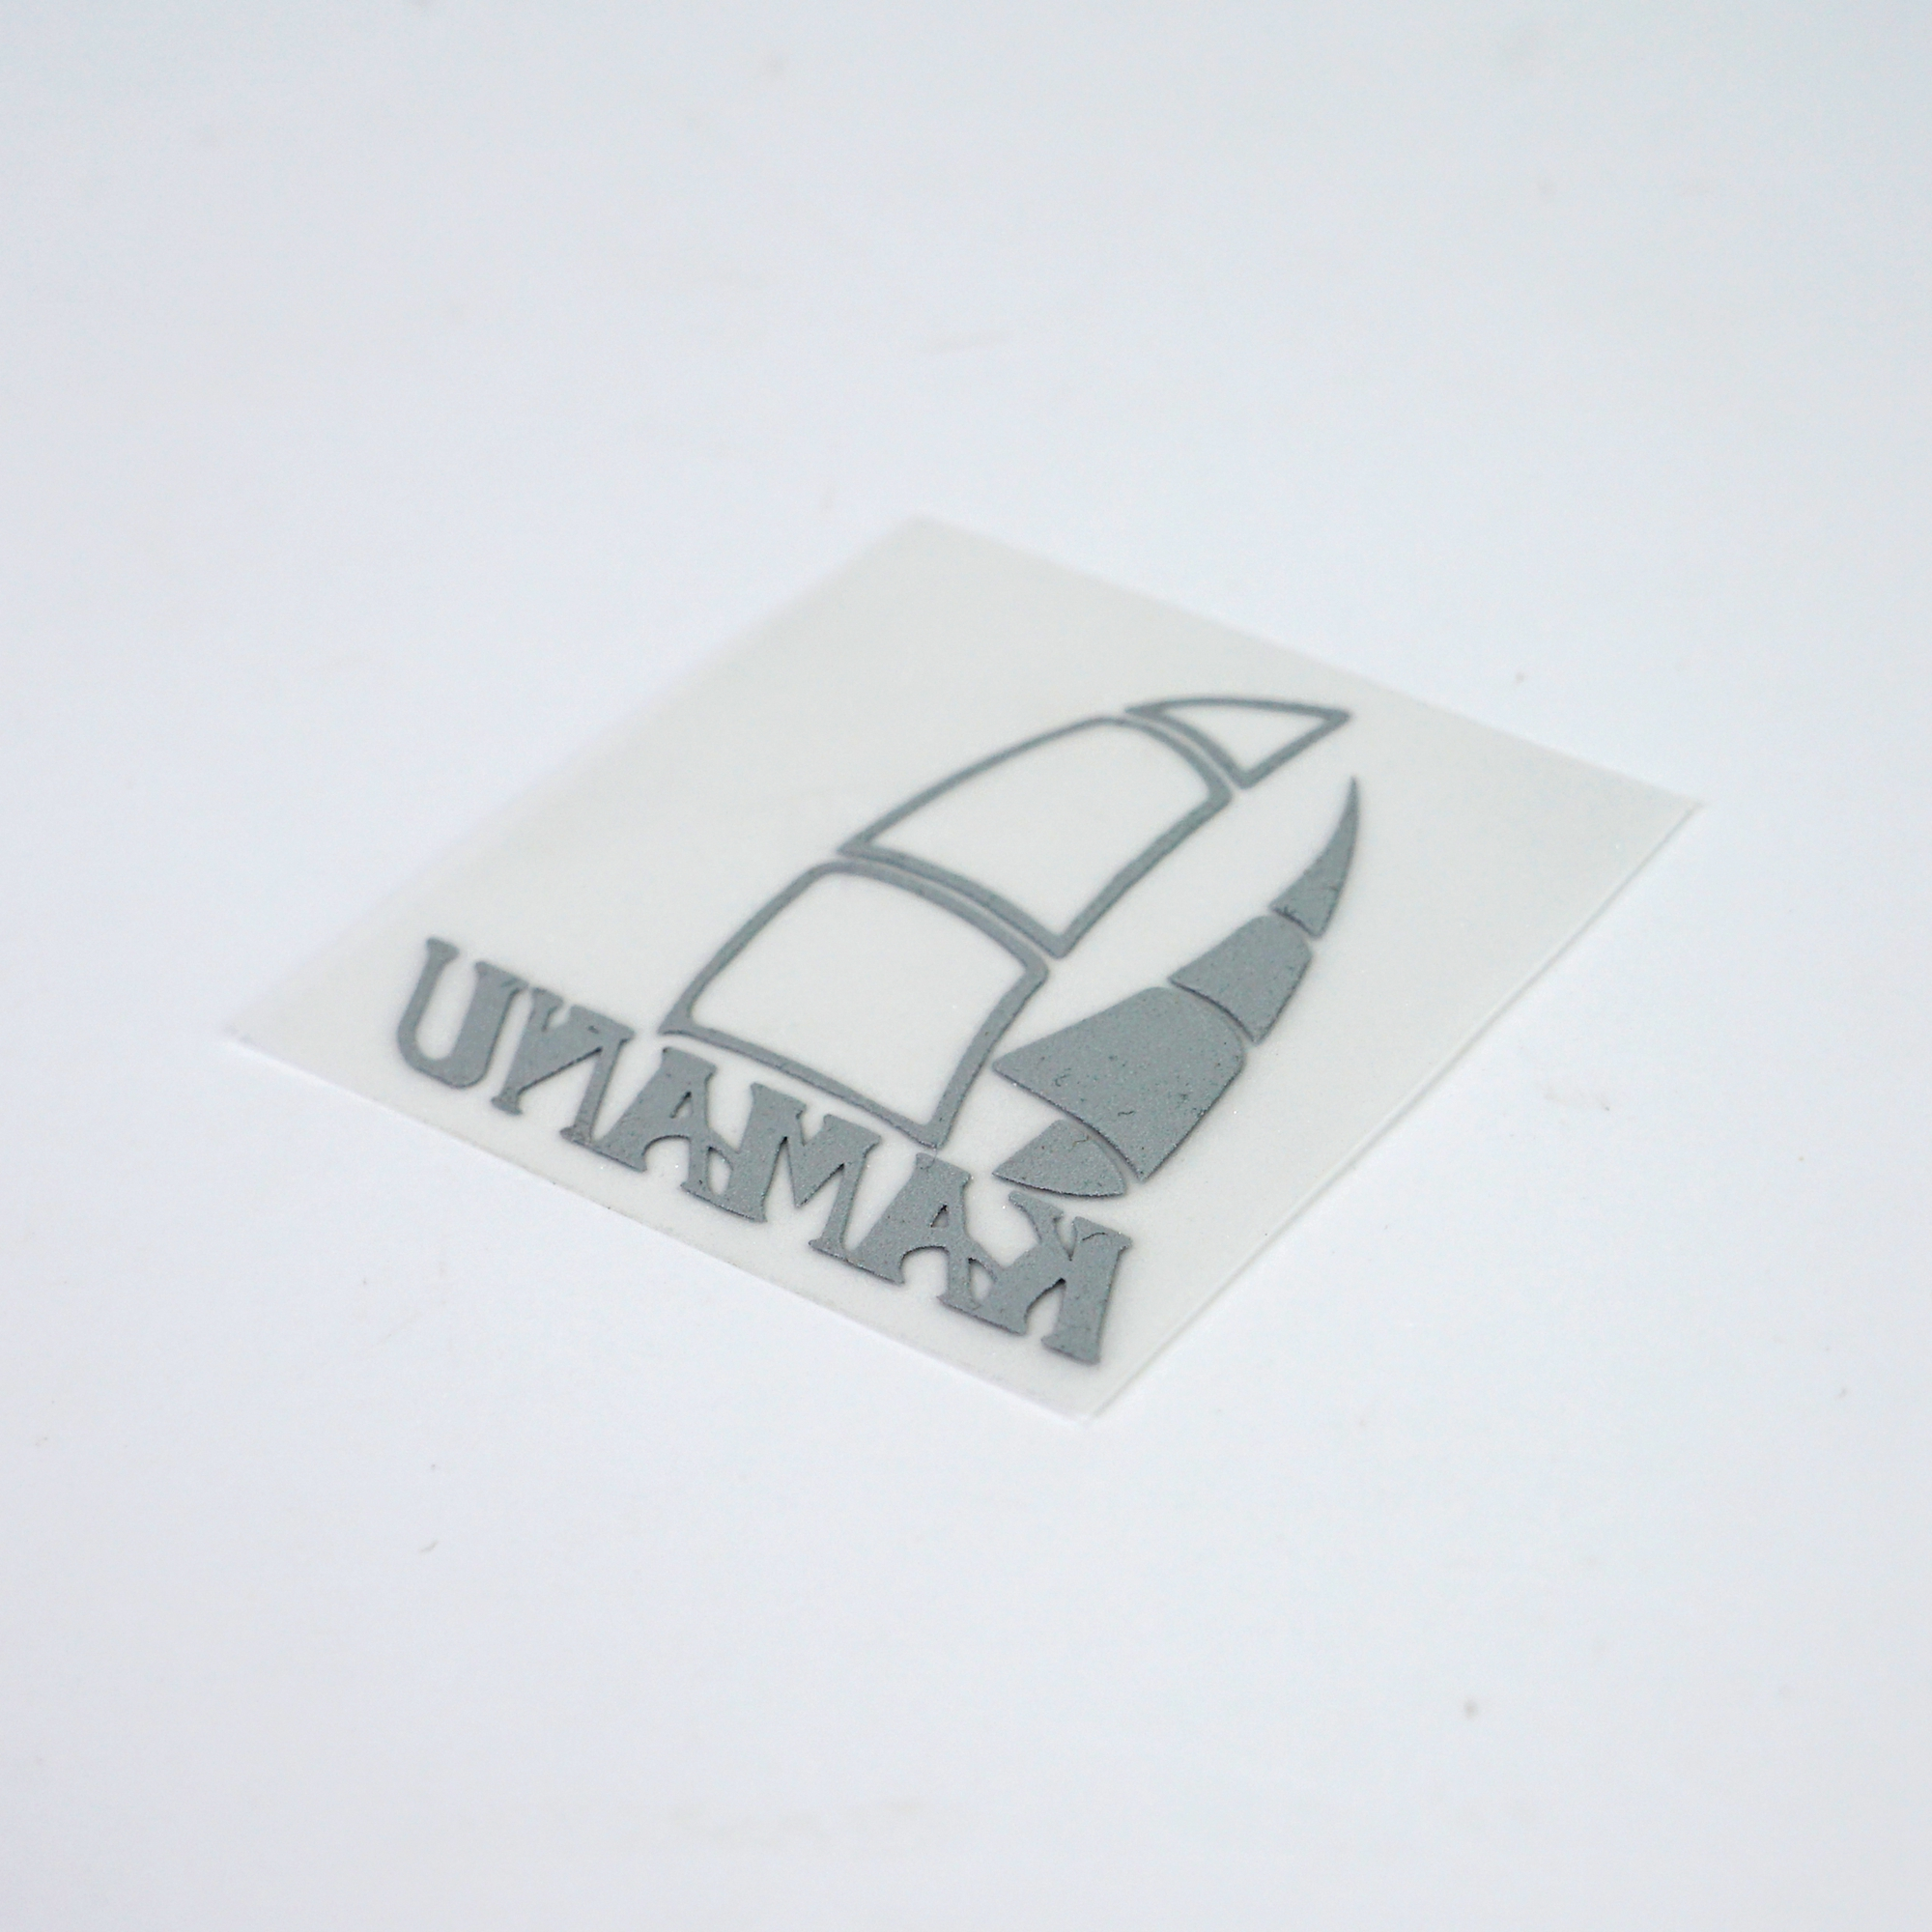 Heat Transfer Type and Textiles Application reflective heat transfer vinyl for clothing